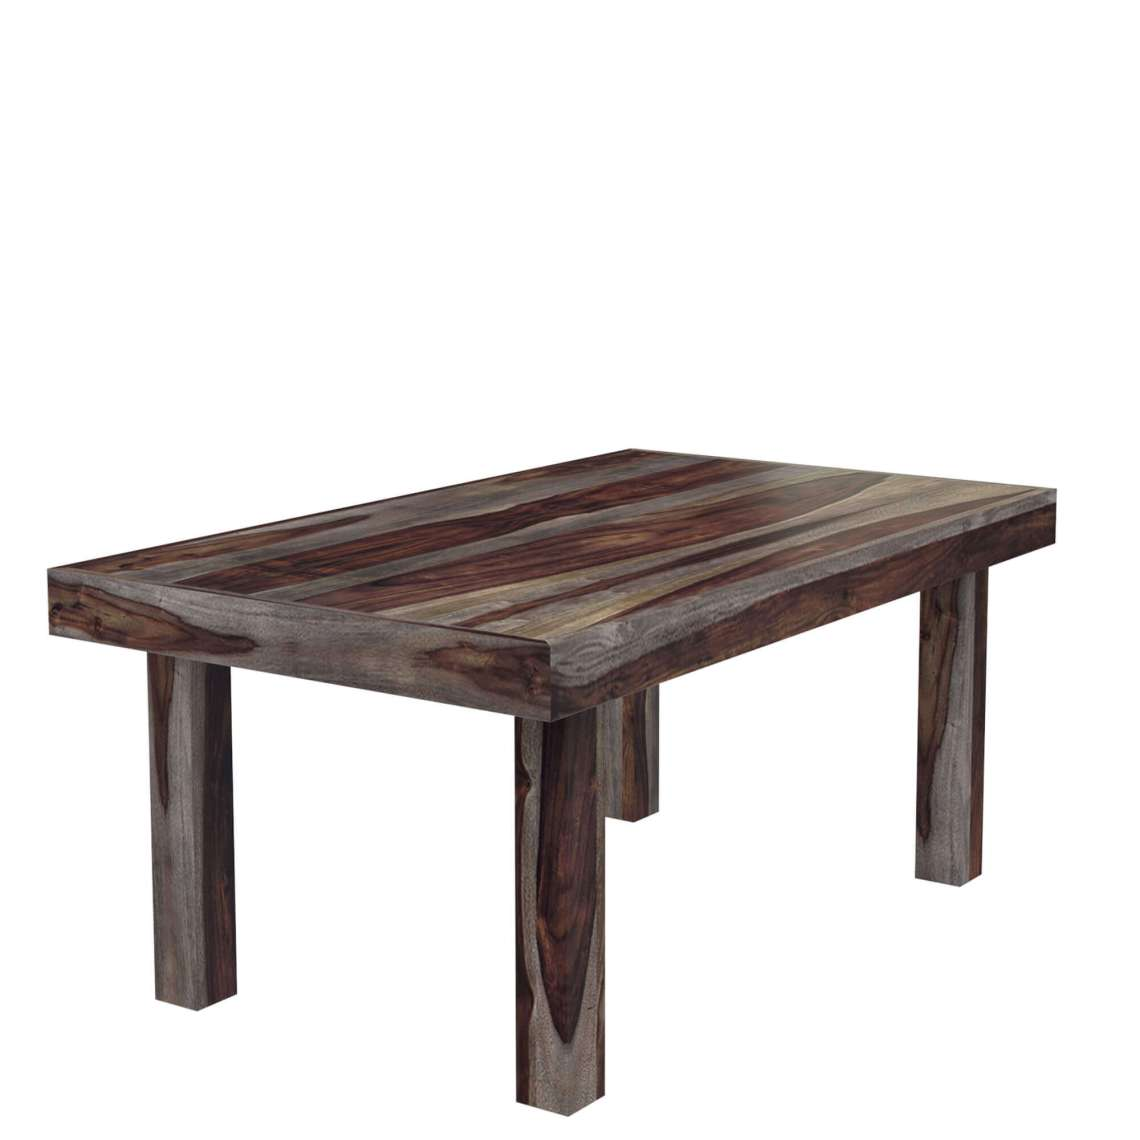 Image Result For Rustic Dining Room Table